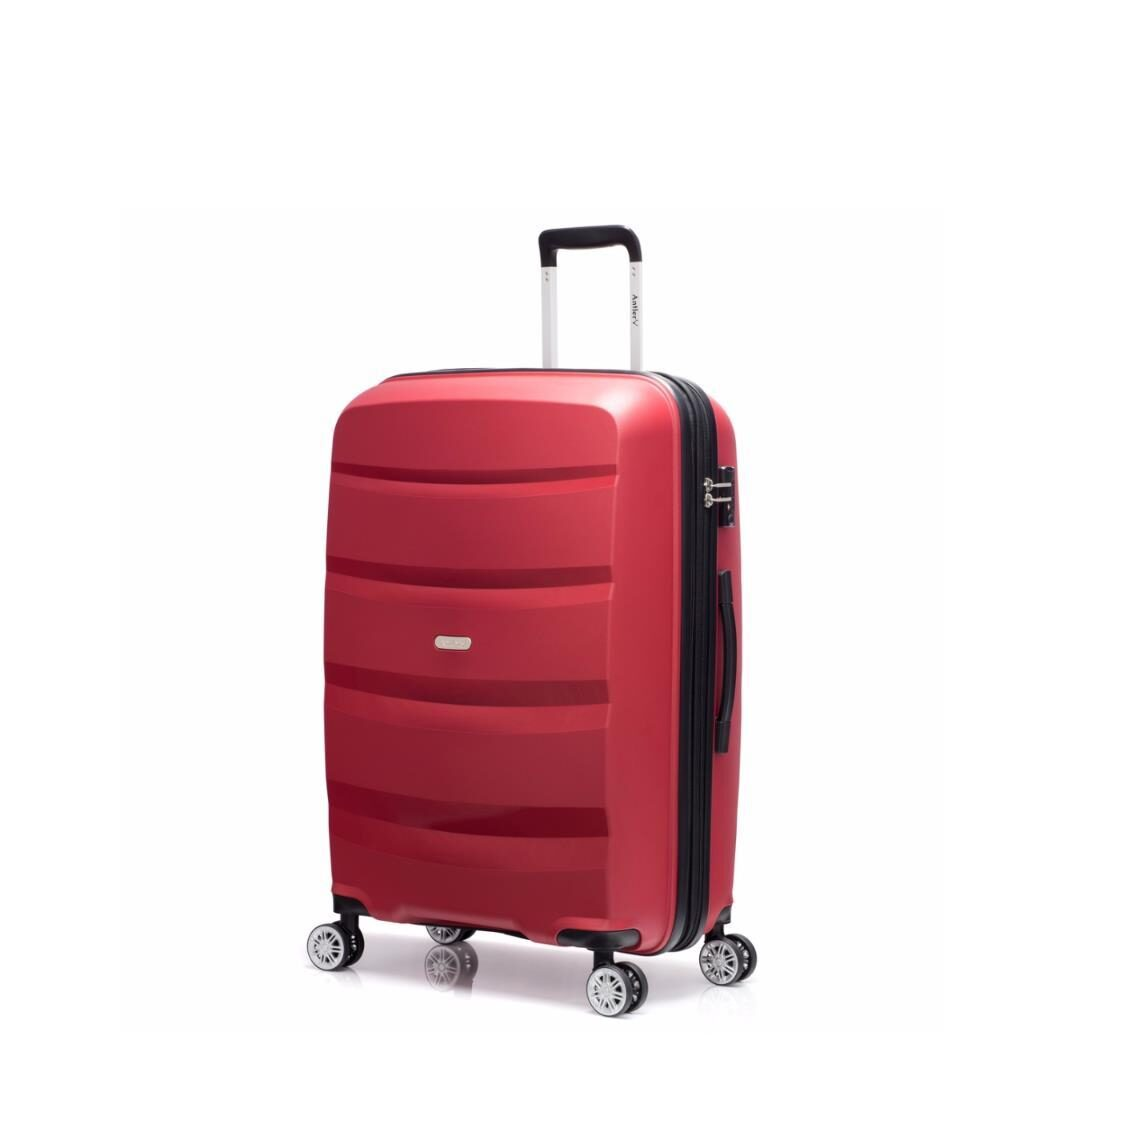 Hino 4 Wheel Polyproplyene Hardcase with TSA lock In Red